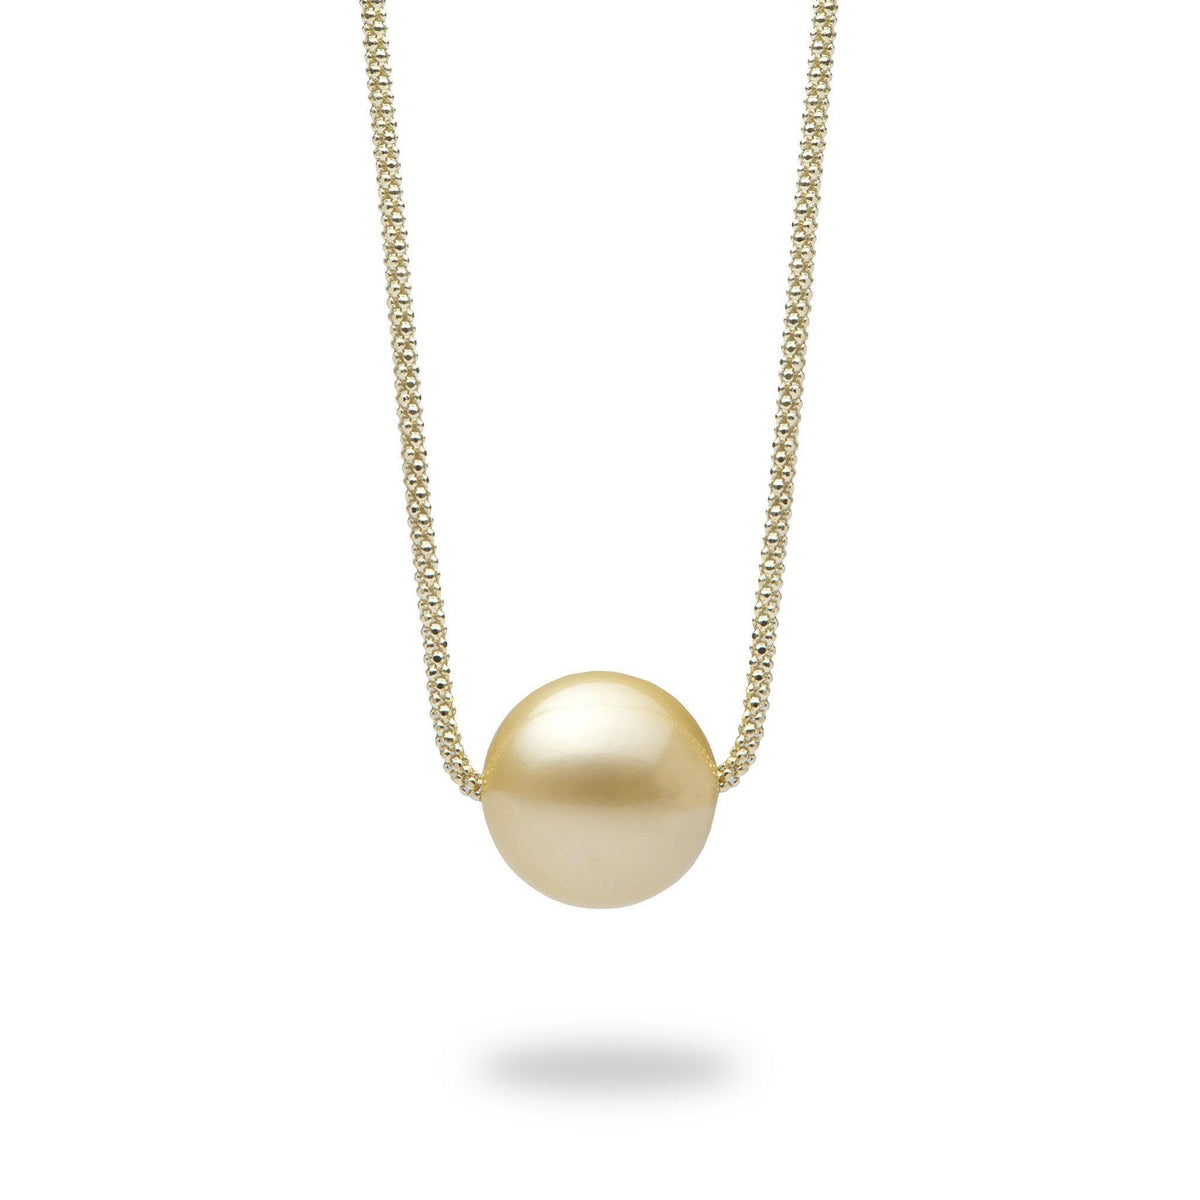 South Sea Golden Pearl Necklace in 14K Yellow Gold (14-15mm)